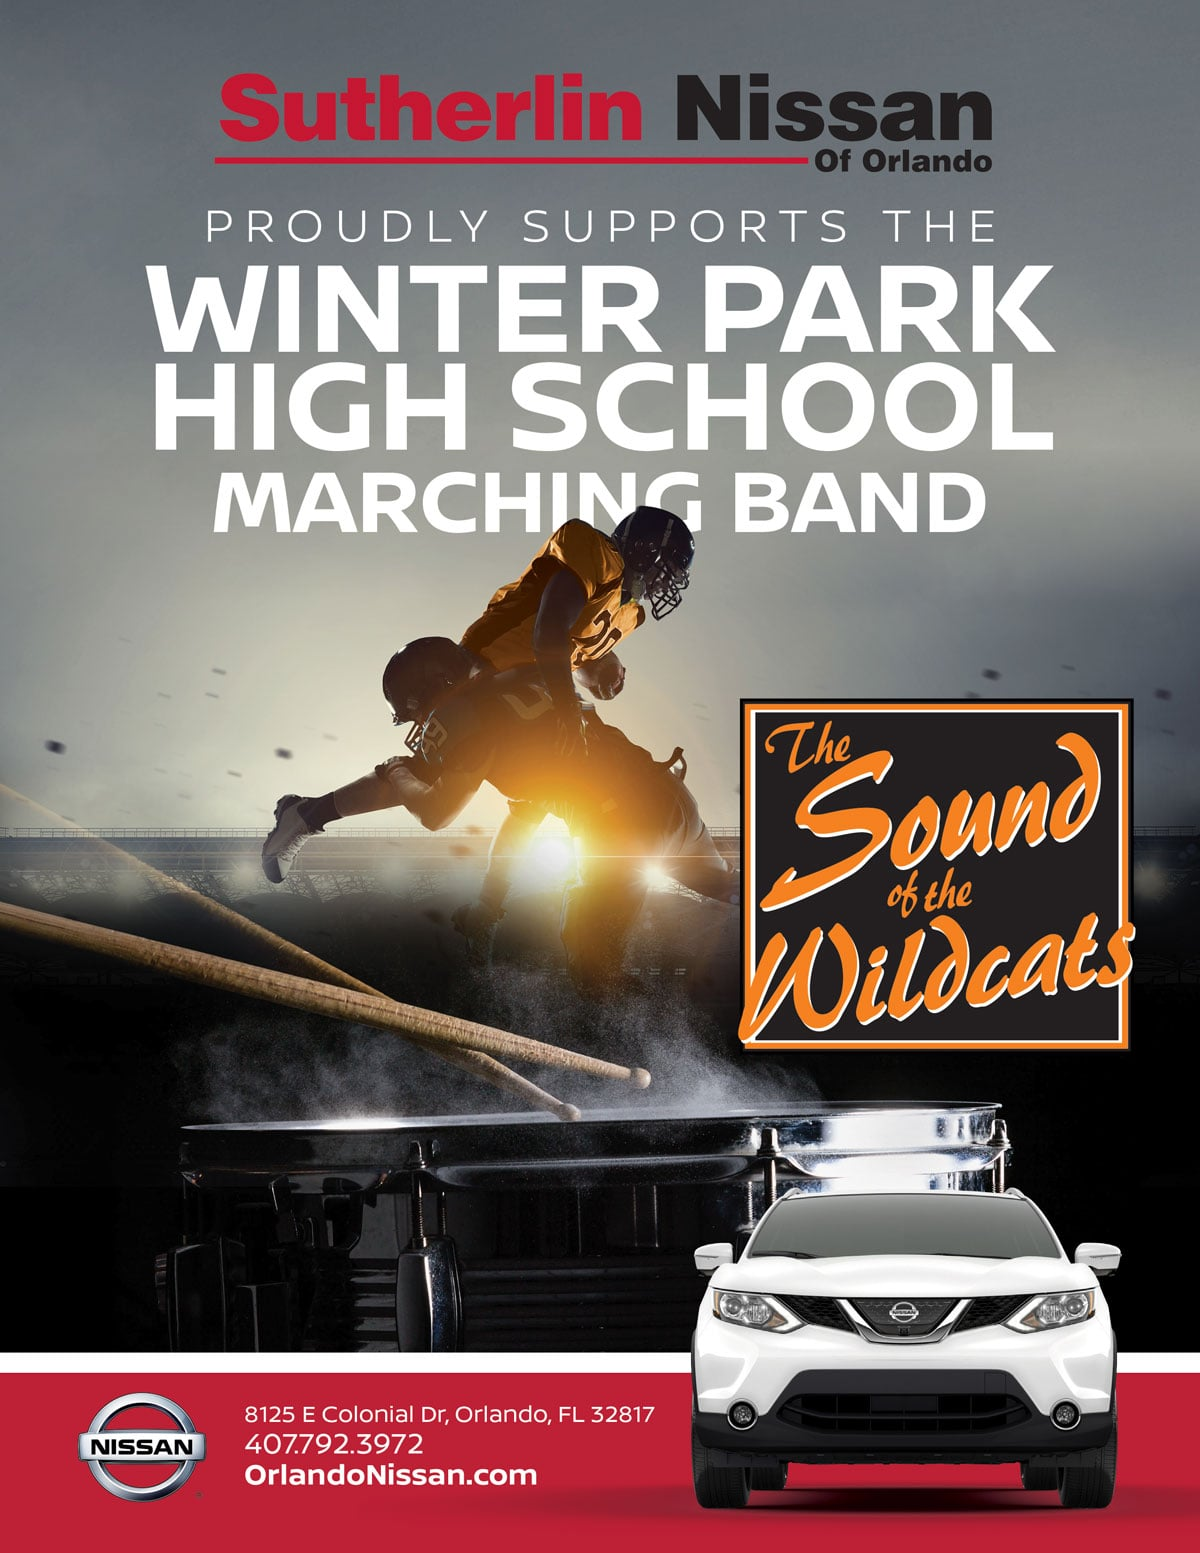 Winter park high school marching band the sound of the wildcats at sutherlin nissan orlando